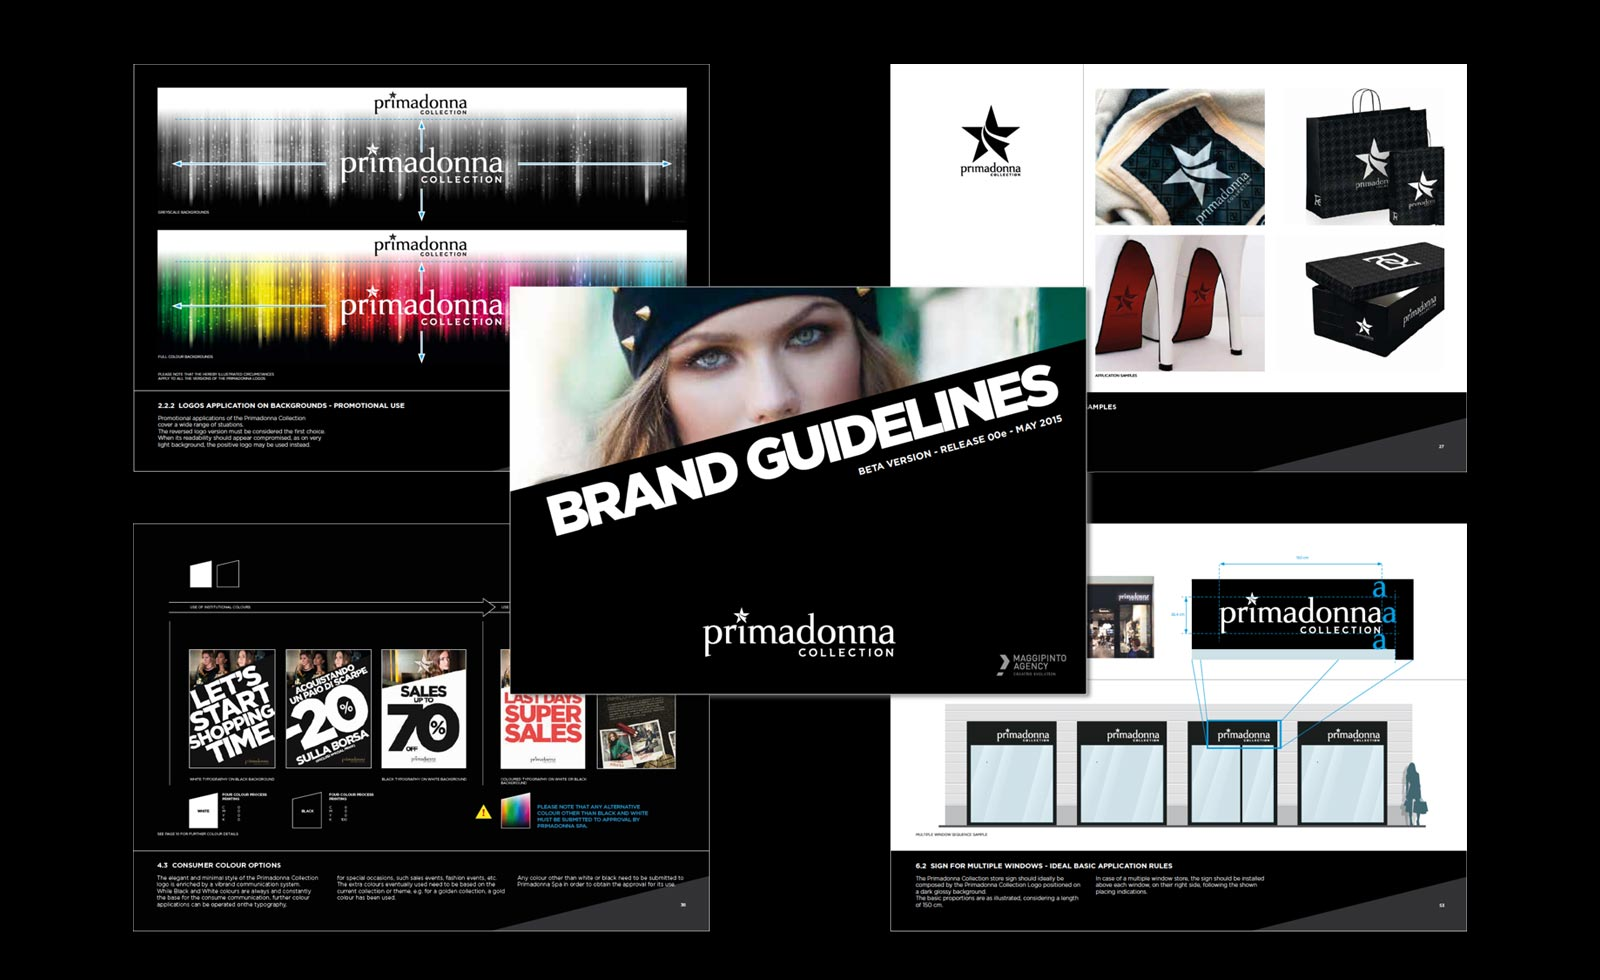 primadonna collection shoes fashion brand guidelines rebranding brandbook